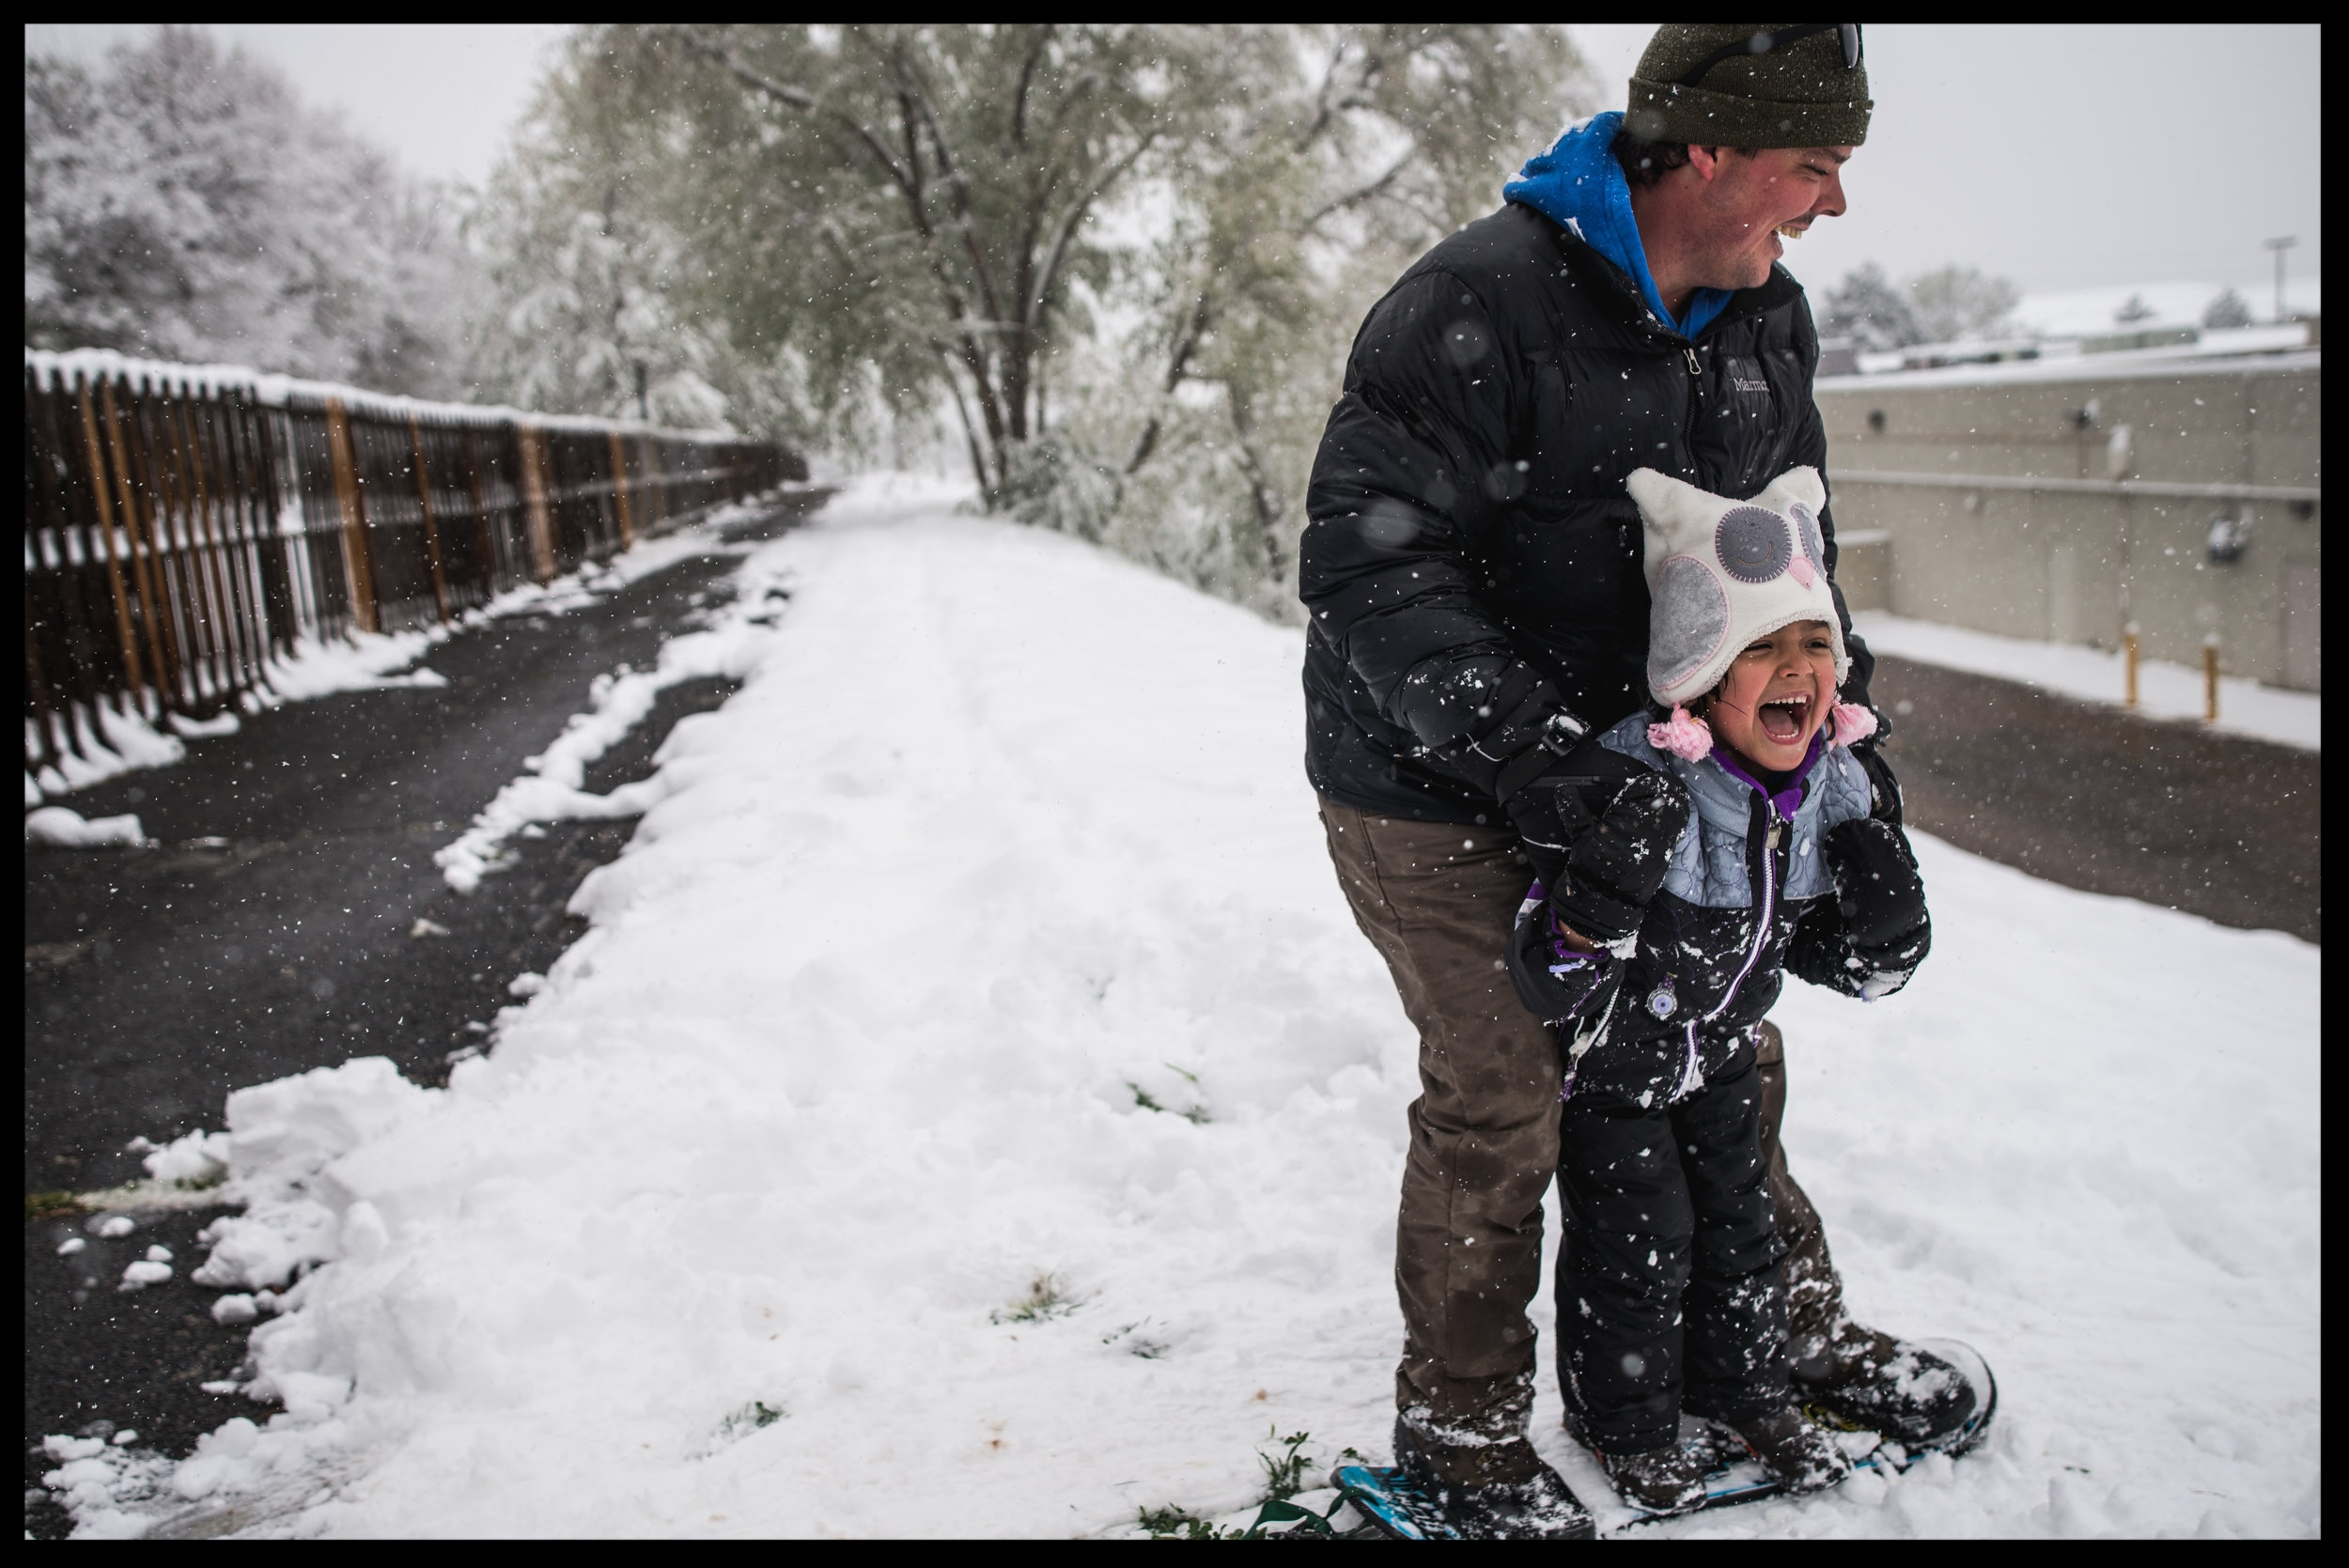 Little girl and her daddy standing on a snowboard, sliding down a hill in the snow, color